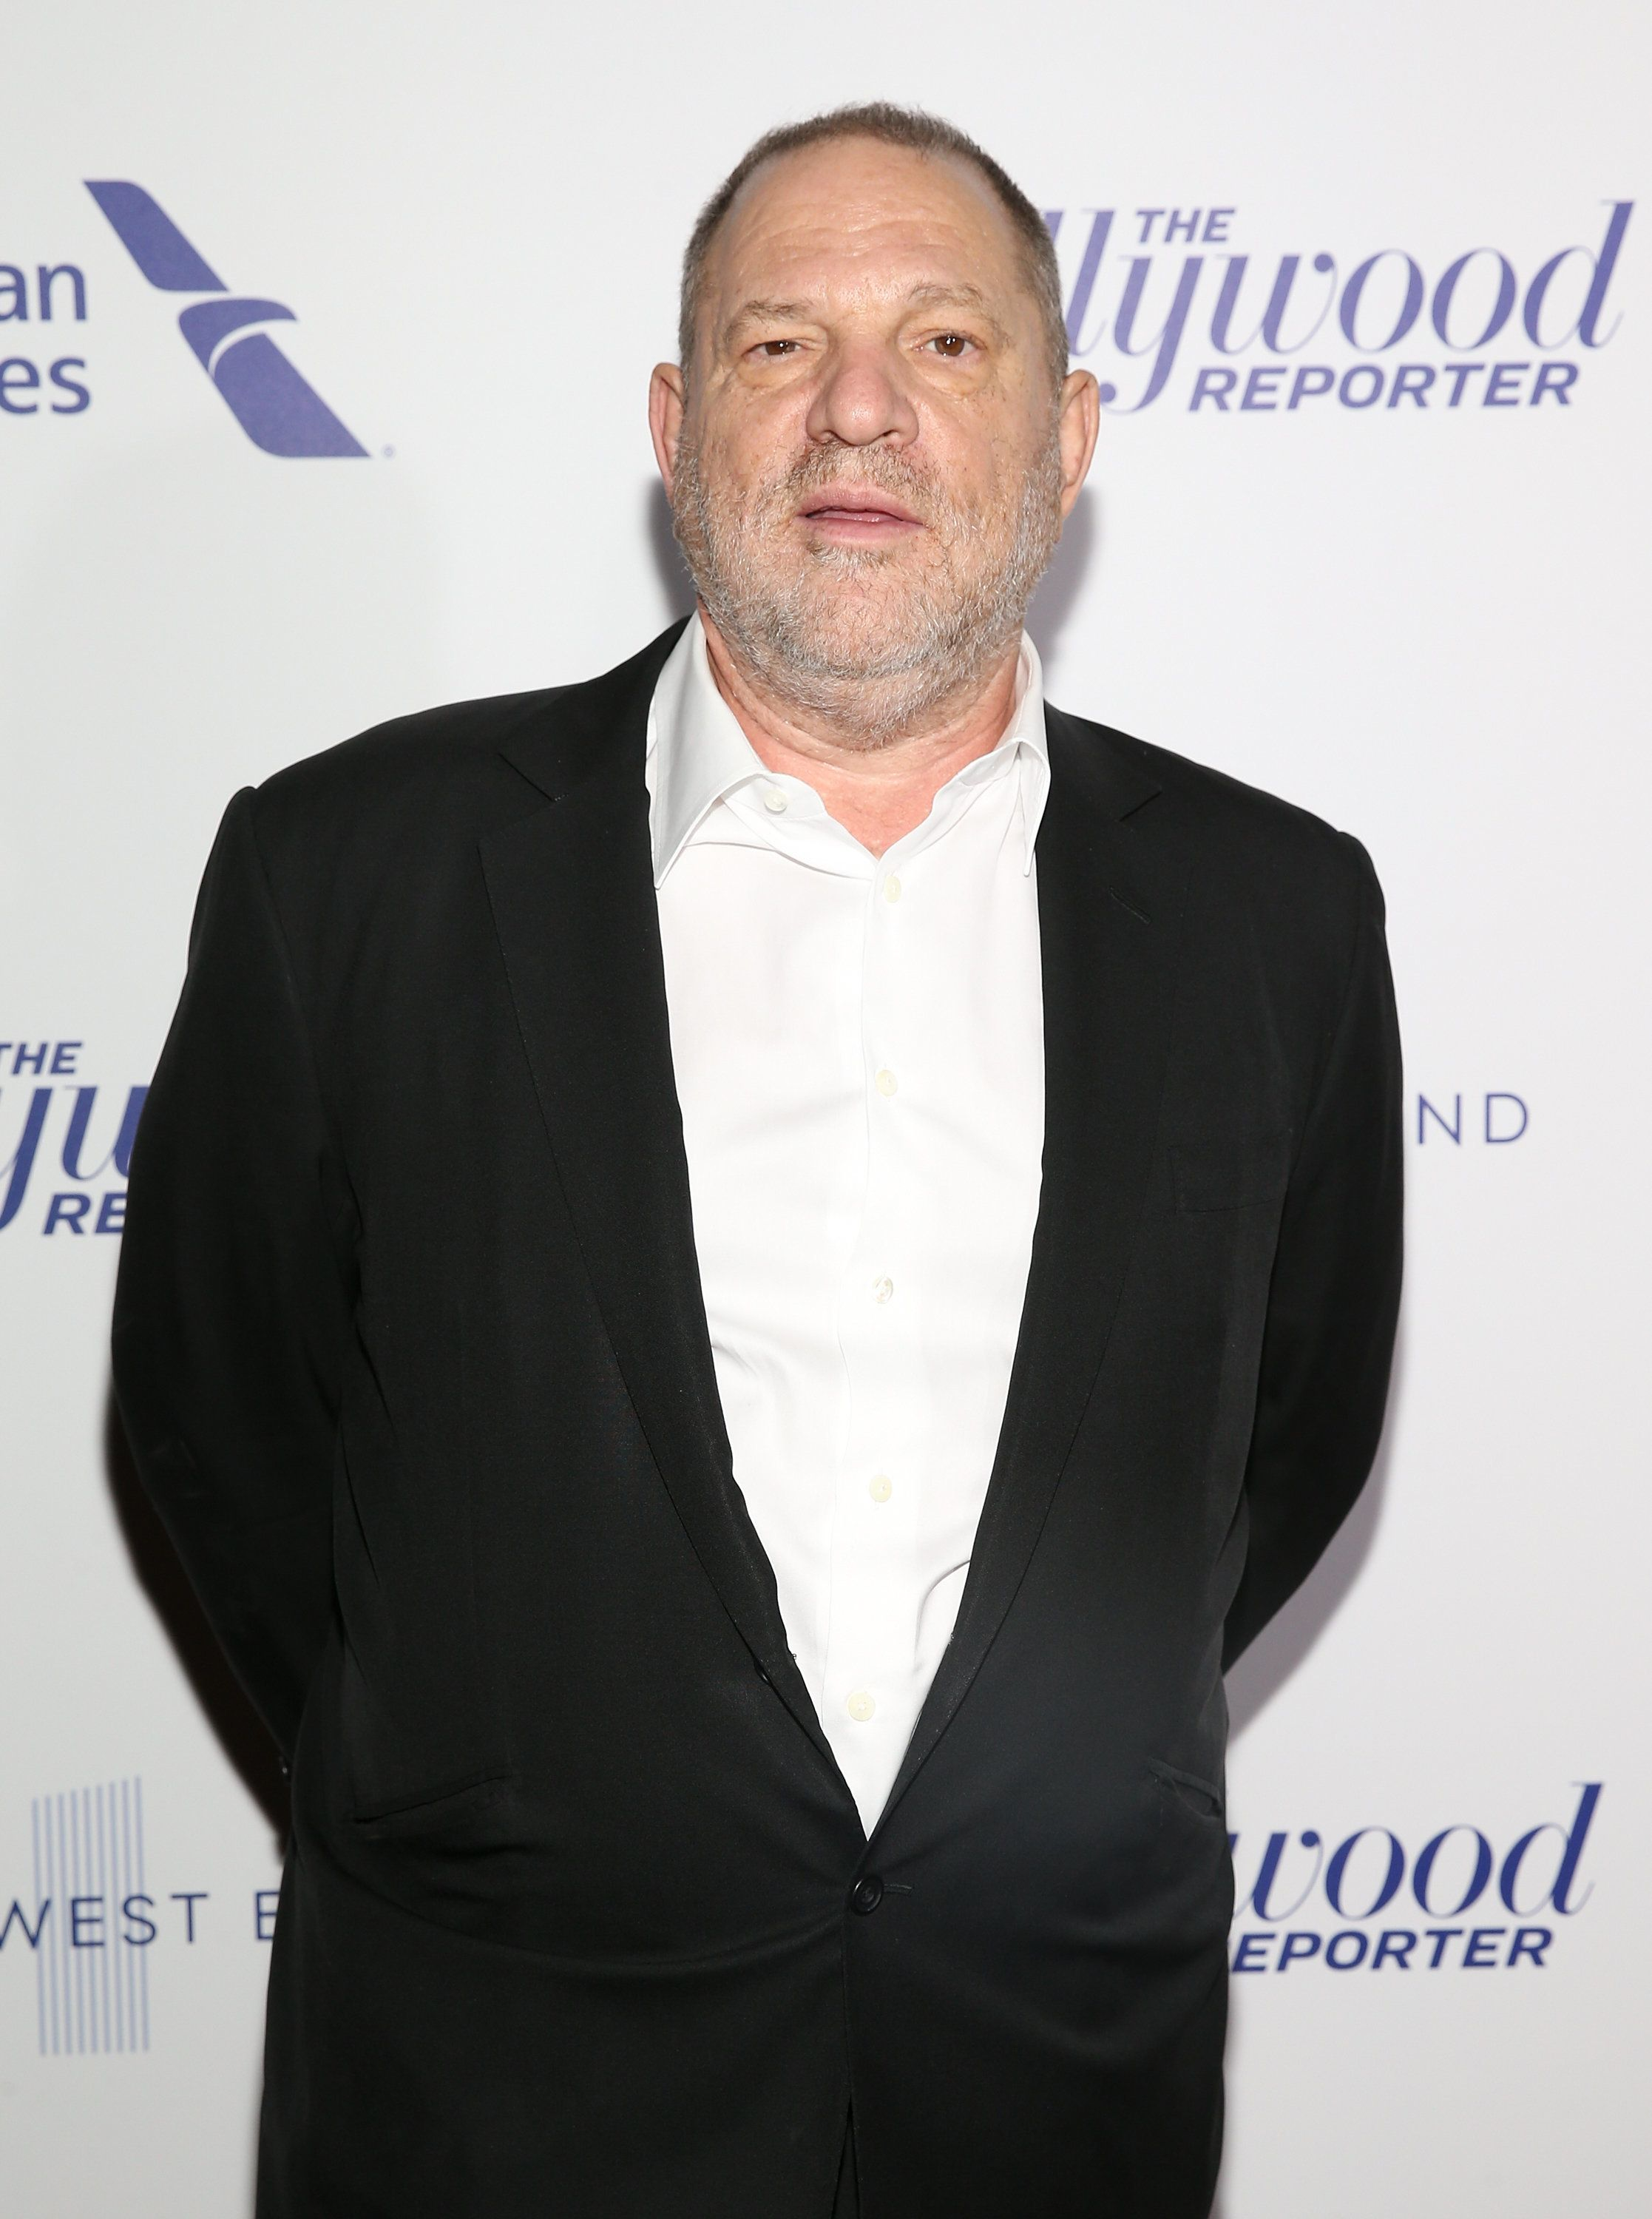 NEW YORK, NY - APRIL 13: Producer Harvey Weinstein attends The Hollywood Reporter's 35 Most Powerful People In Media 2017 at The Pool on April 13, 2017 in New York City.  (Photo by Bennett Raglin/WireImage)